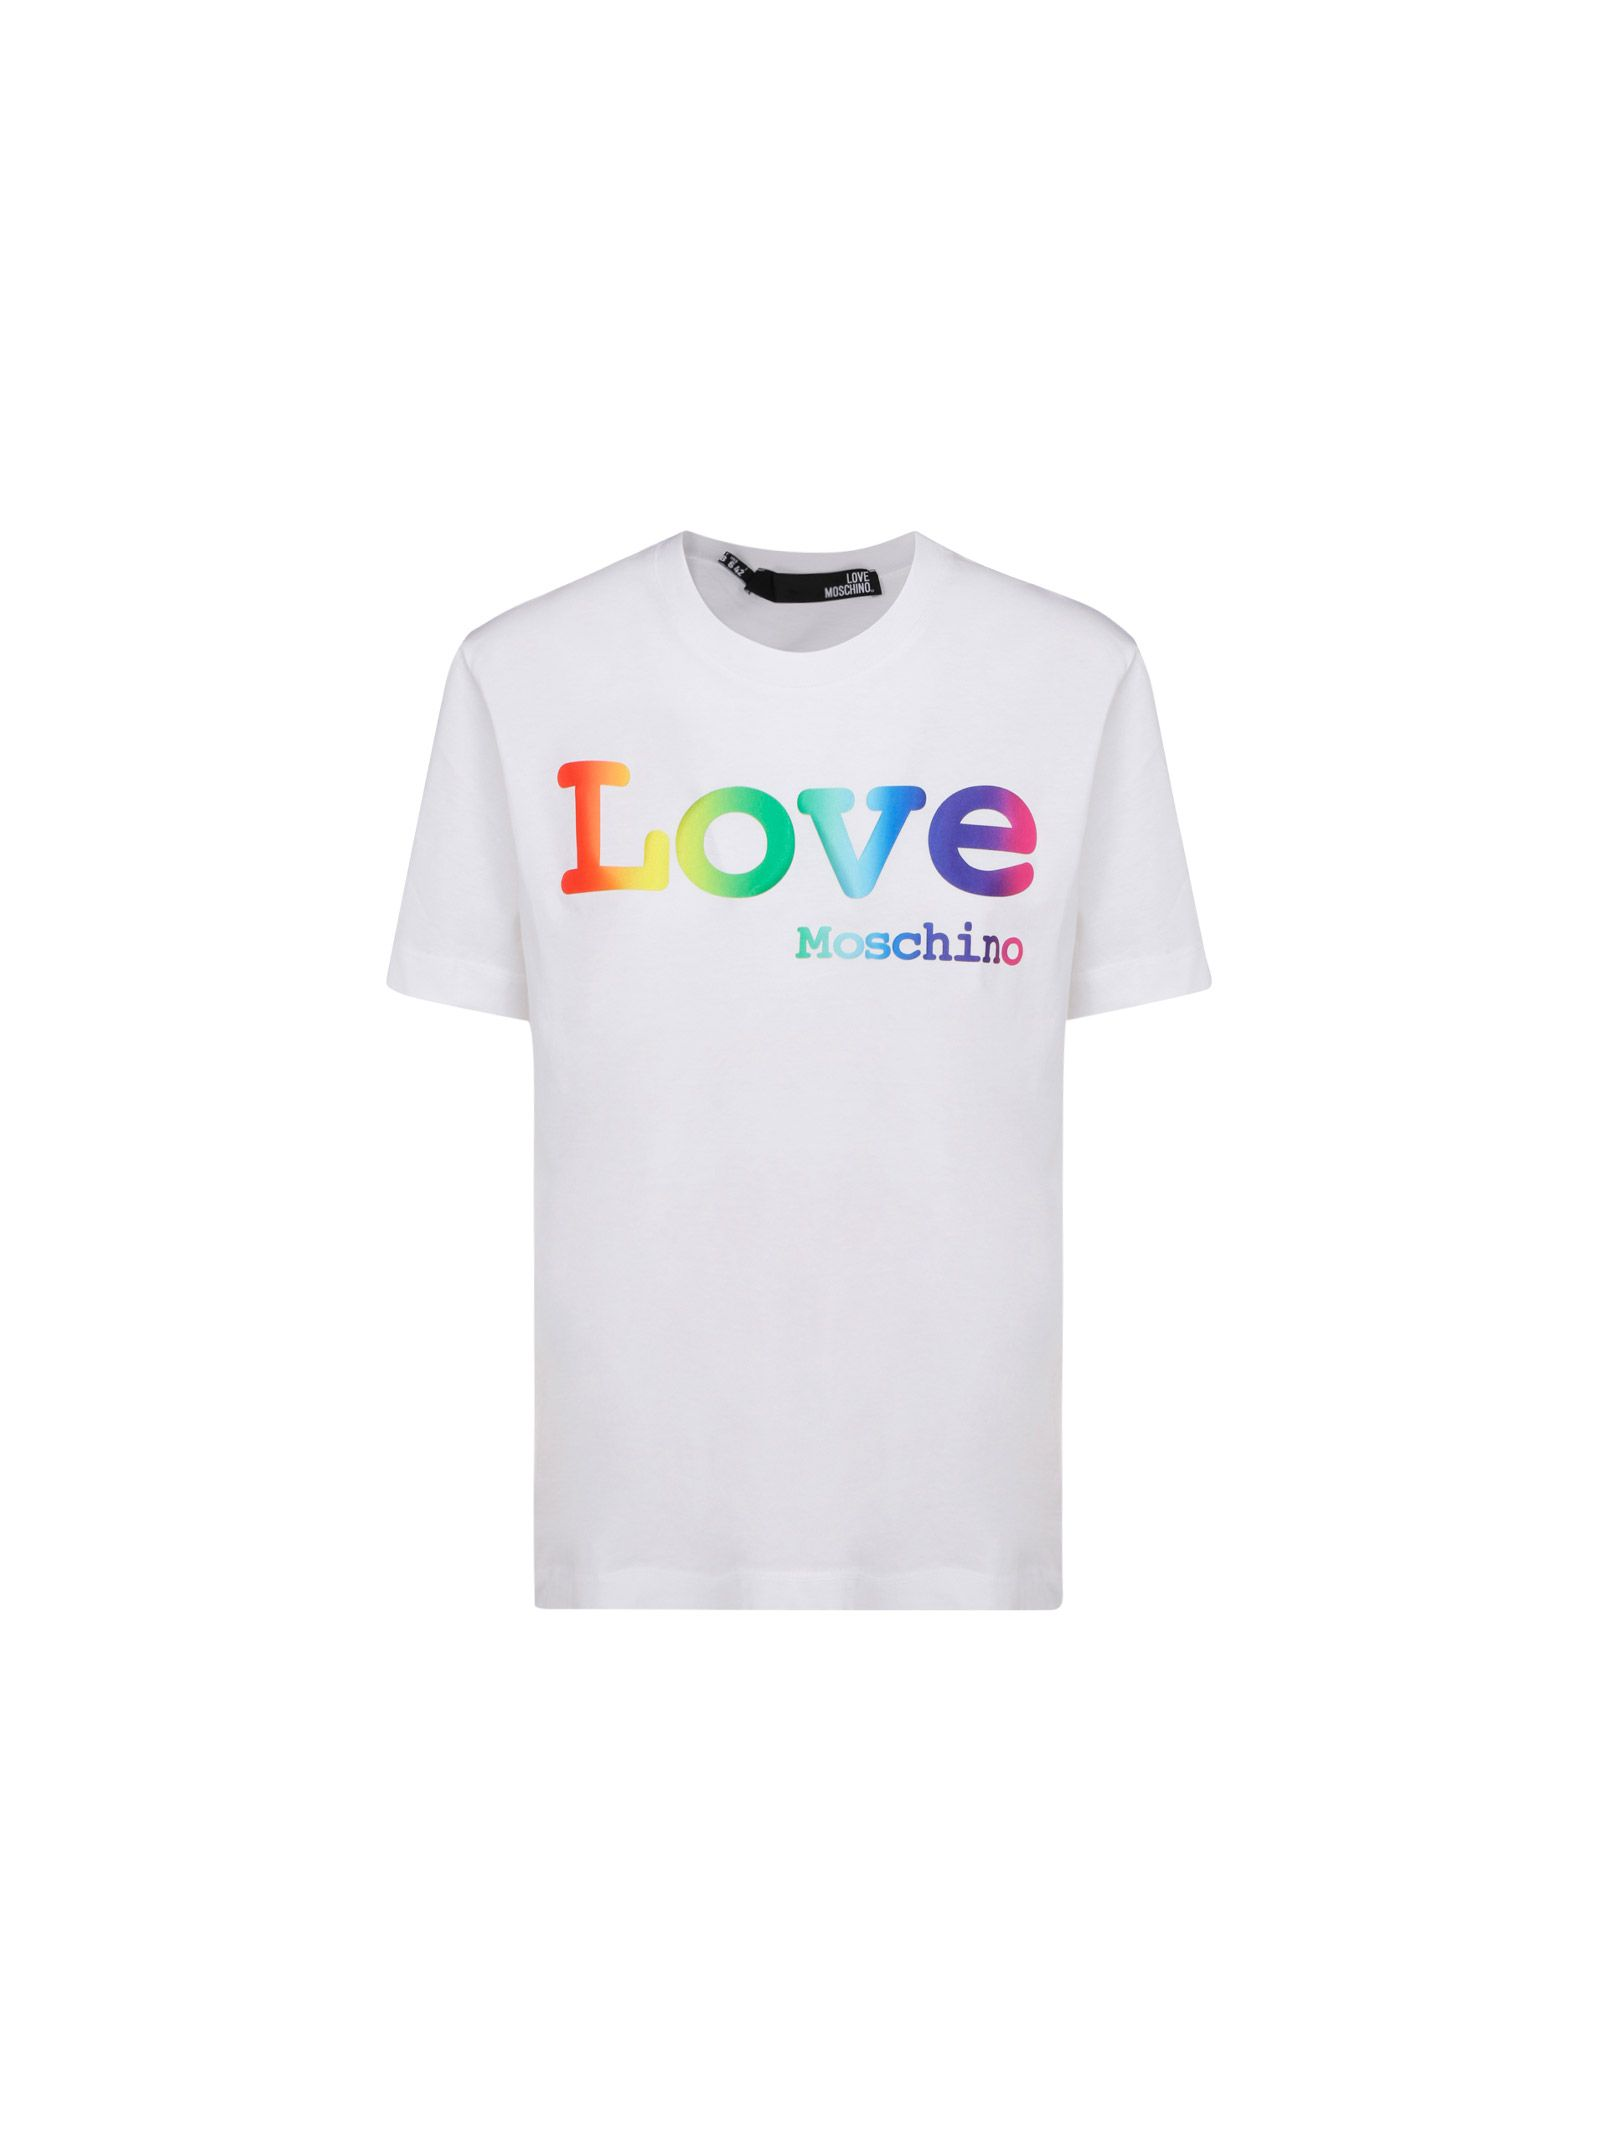 LOVE MOSCHINO LOVE MOSCHINO WOMEN'S WHITE OTHER MATERIALS T-SHIRT